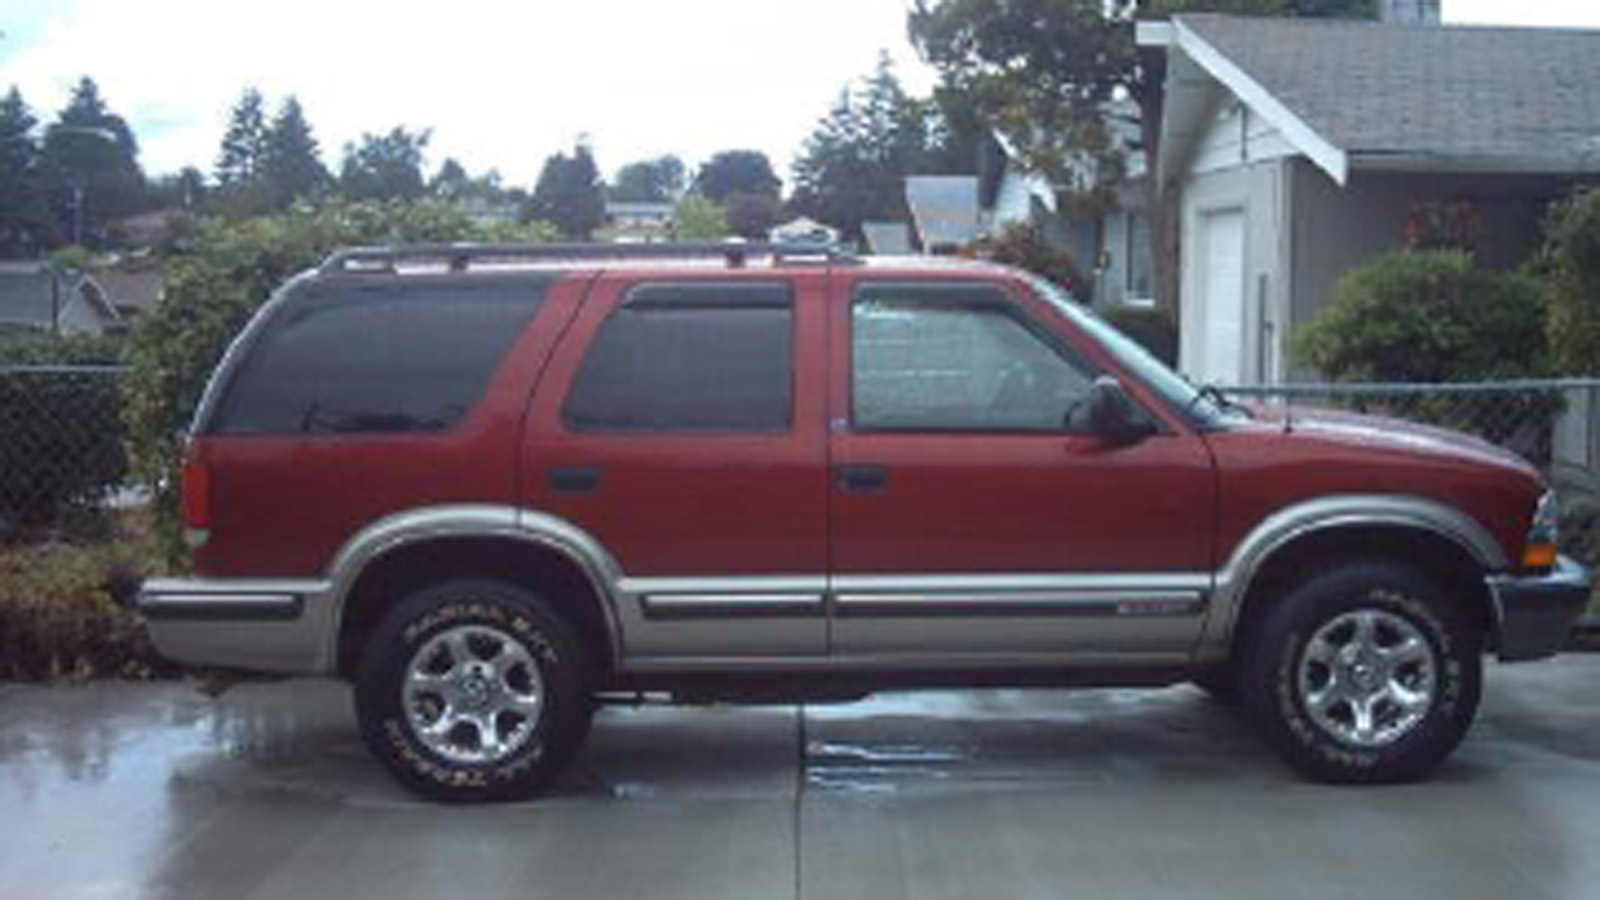 Police in Denver are looking for a red or black 90s Chevy Blazer involved in a hit-and-run at Knox Ct. & 10th Ave. on Feb. 16 (credit: Denver Police)